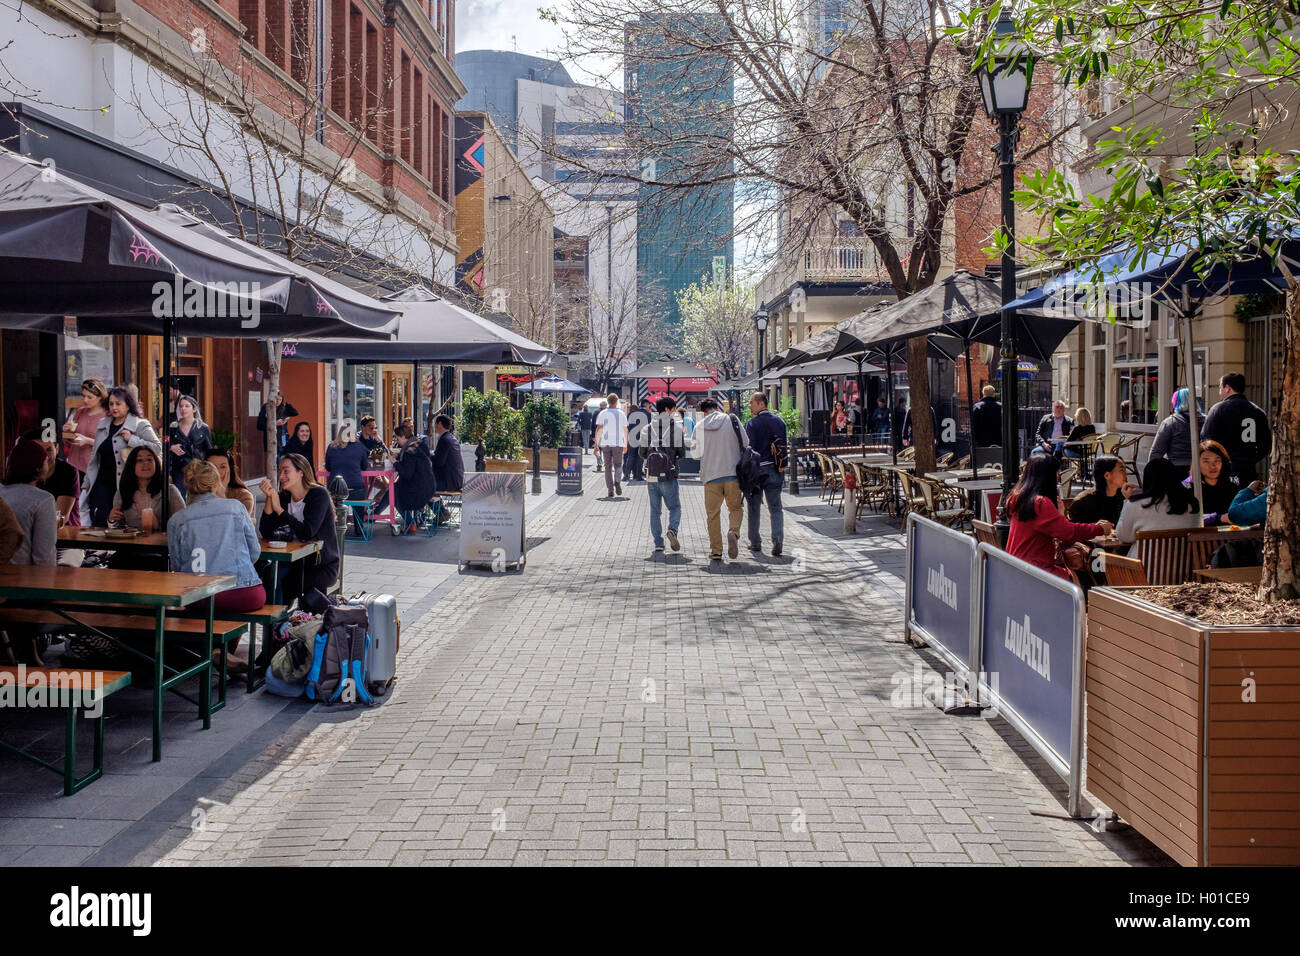 Diners and tourists enjoying the sunshine in Leigh street Adelaide Australia - Stock Image